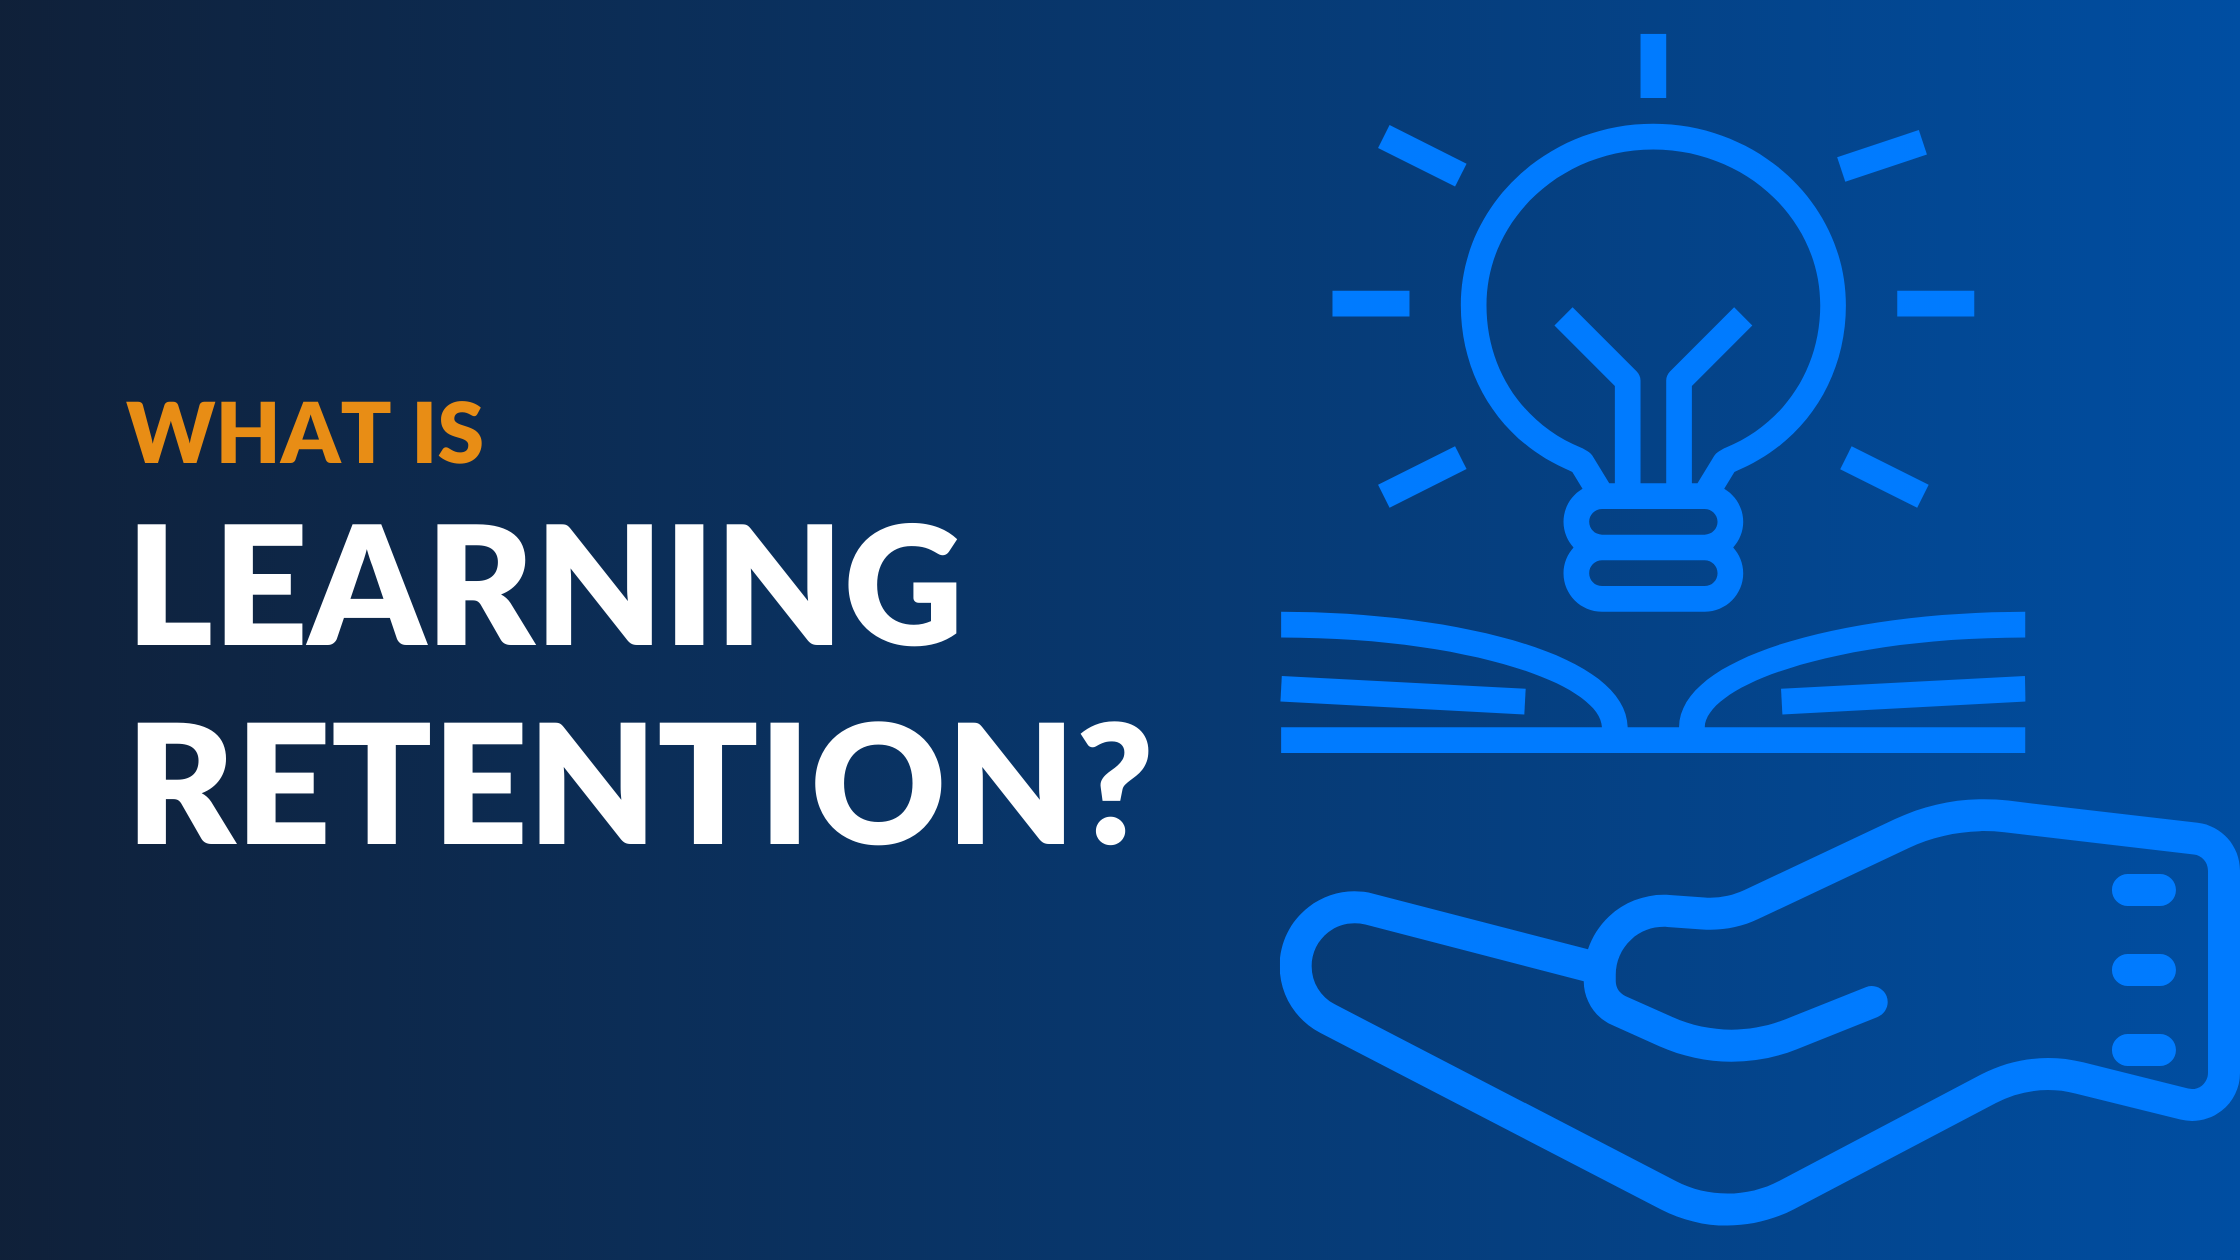 What is Learning Retention?